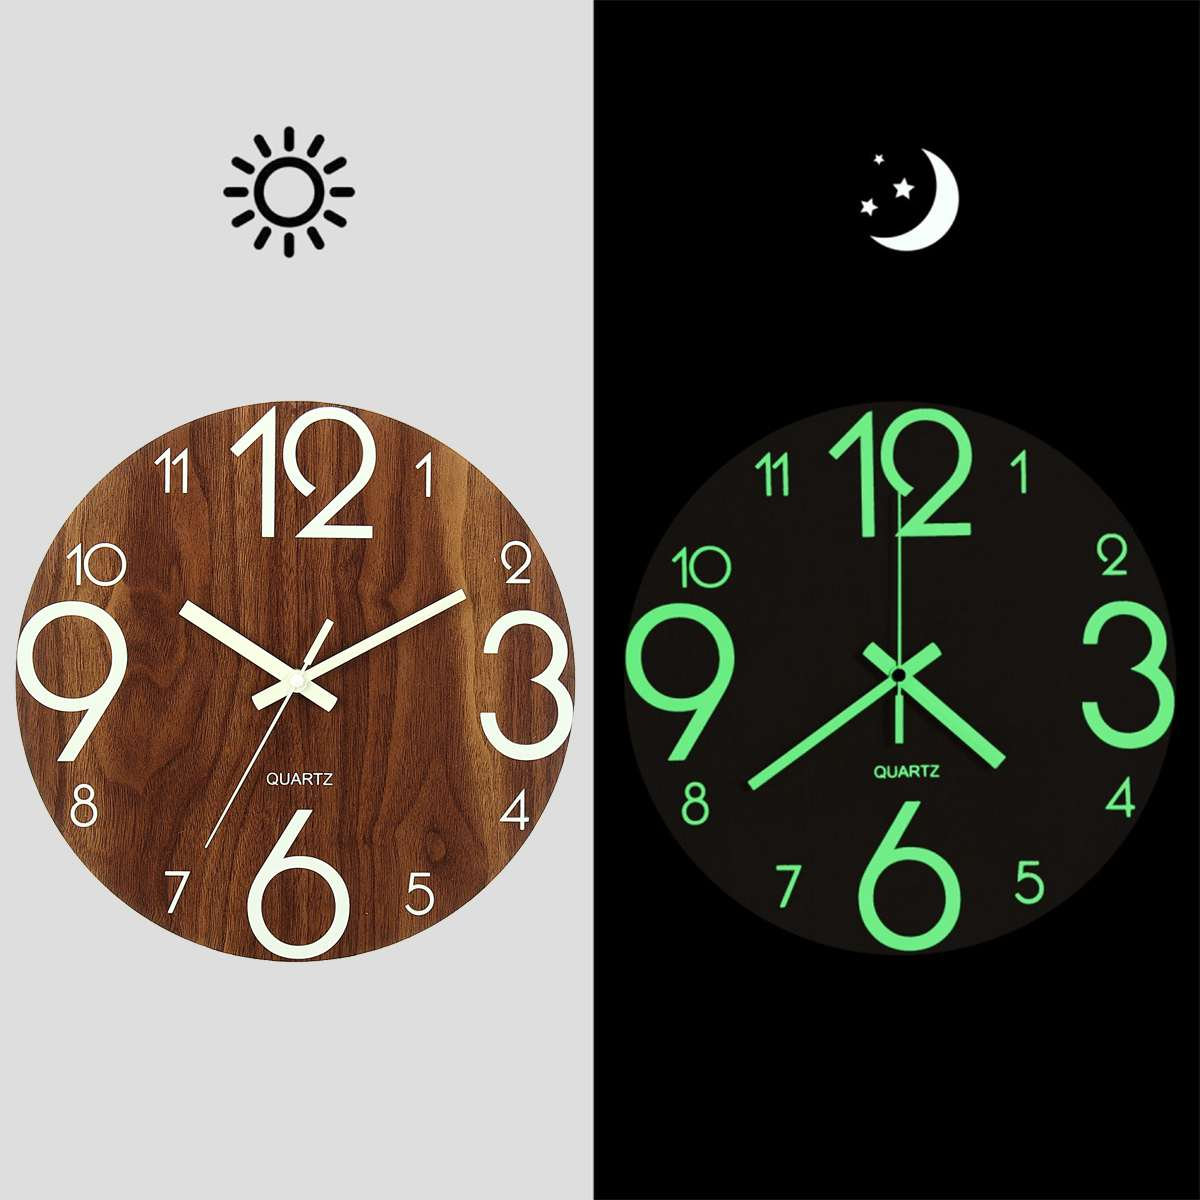 Us 11 63 34 Off 12 Inch Luminous Wall Clock Silent Glow In Dark For Home Living Room Hanging Antique Quartz Office Decoration Wooden